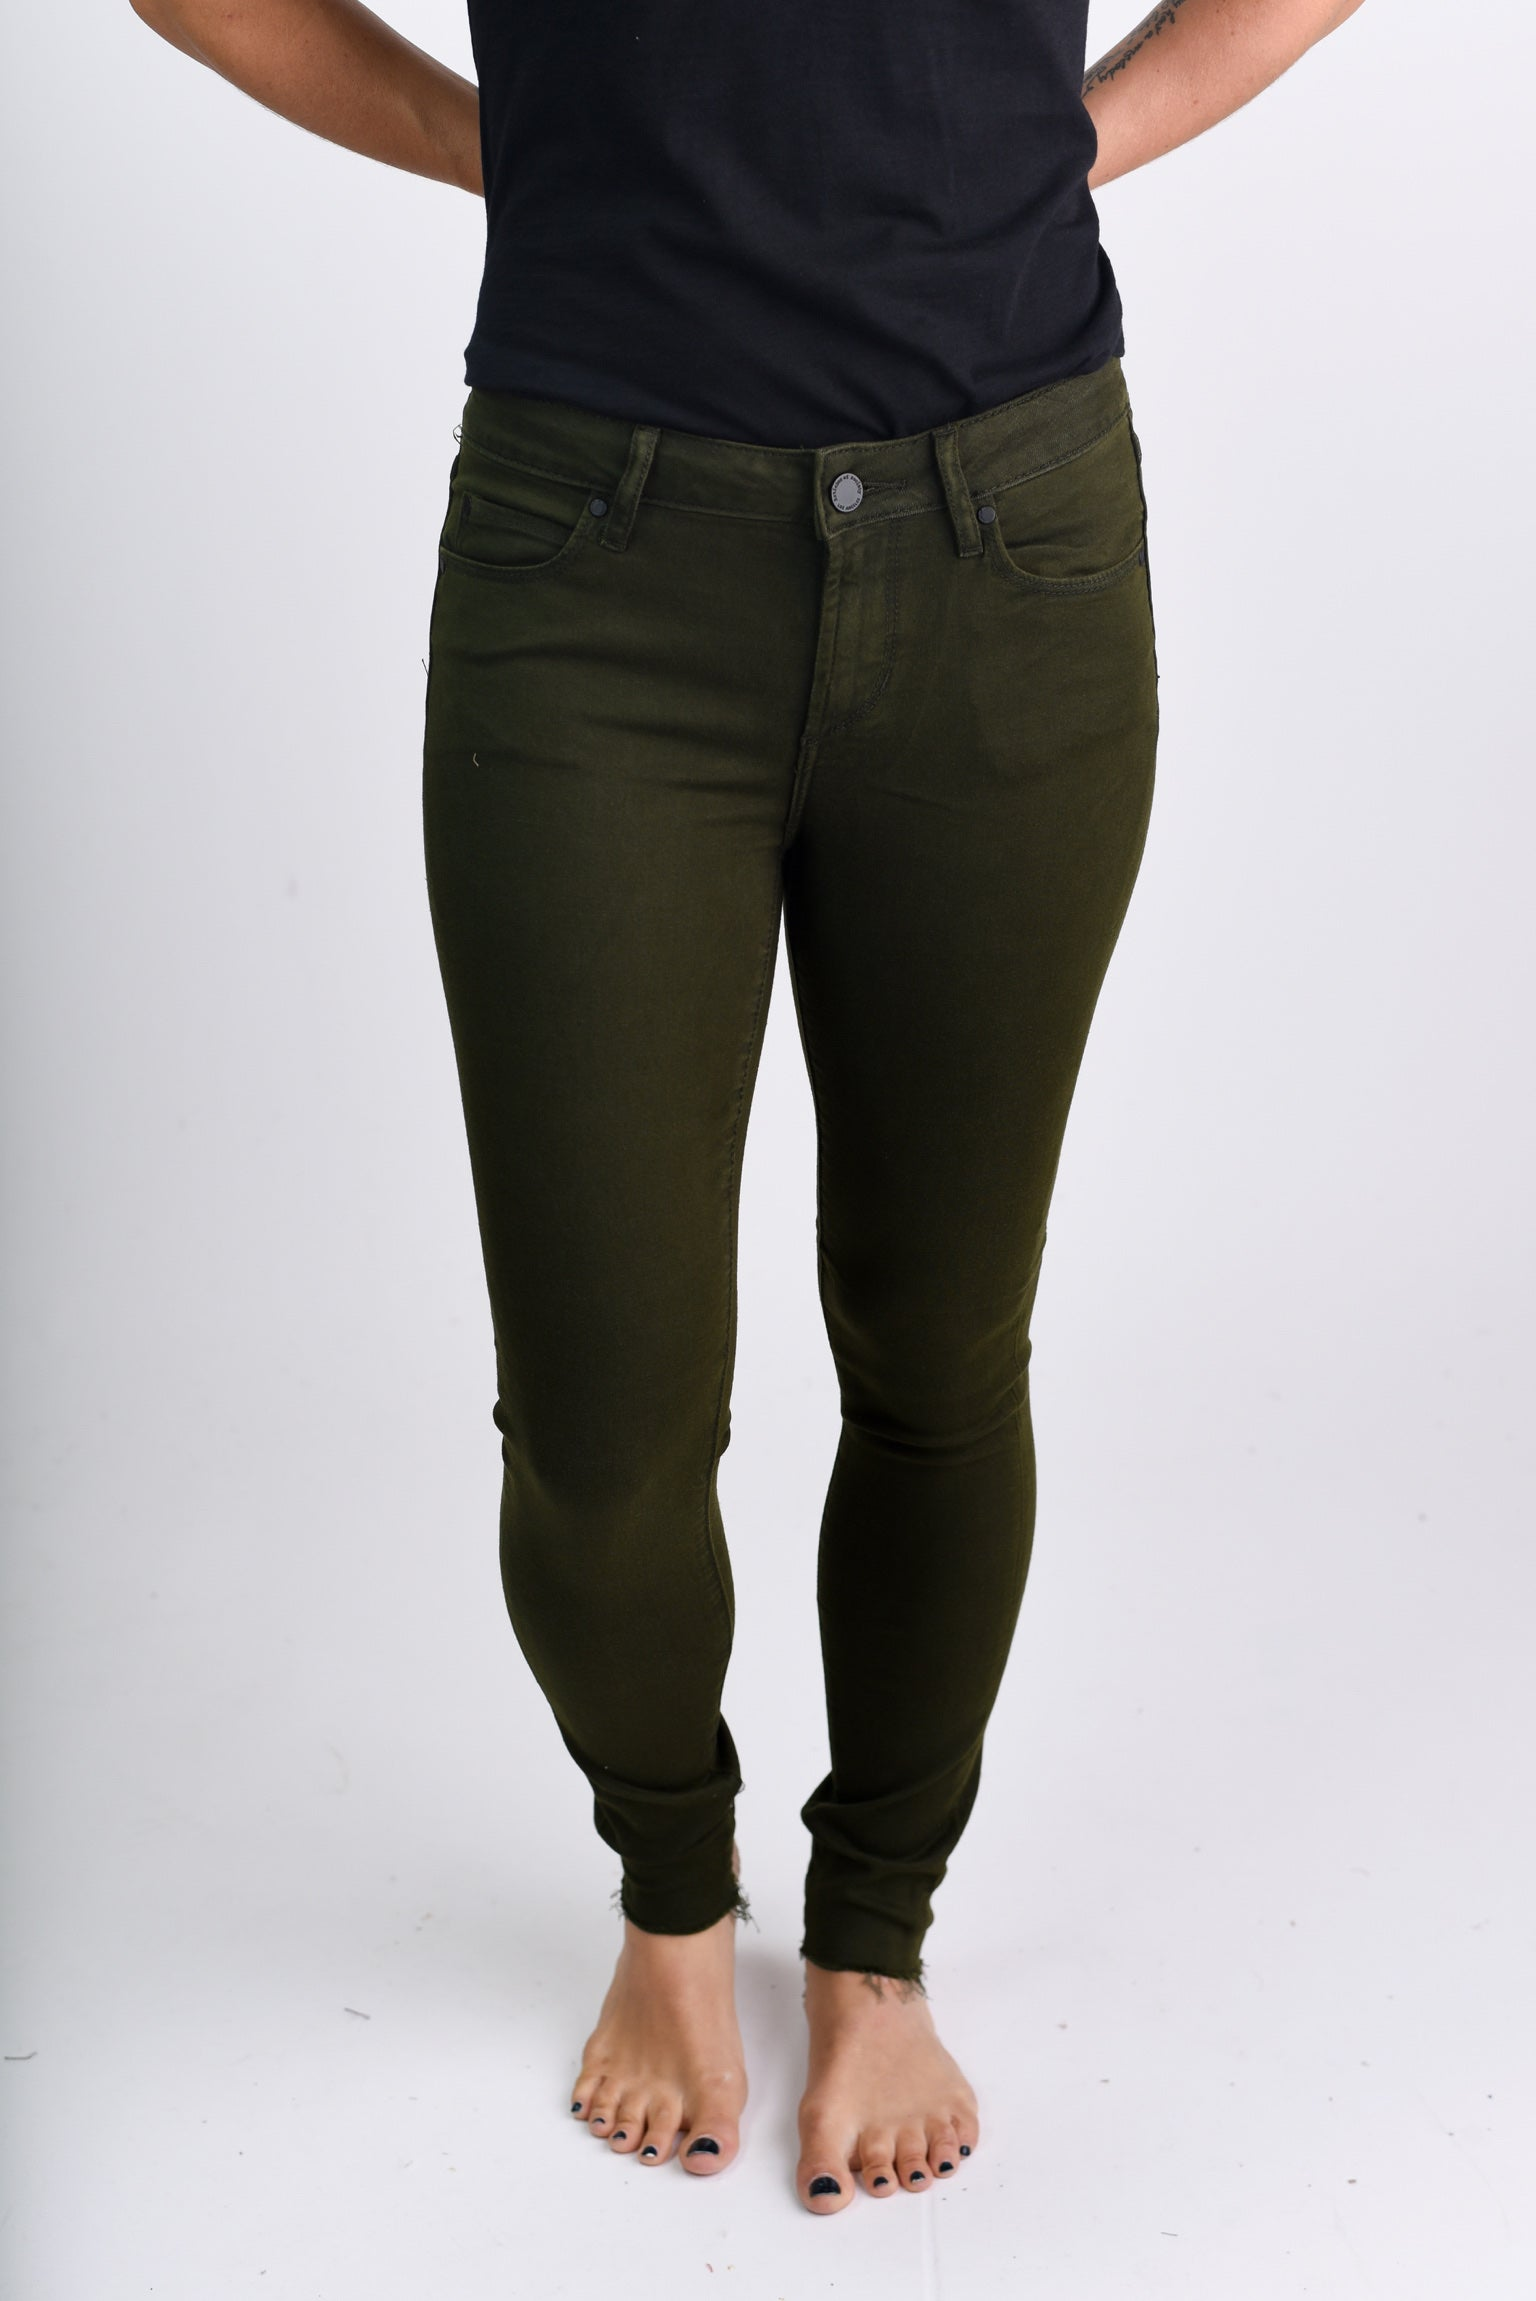 Autumn Glow Olive Ankle Non Distressed Skinny Jeans